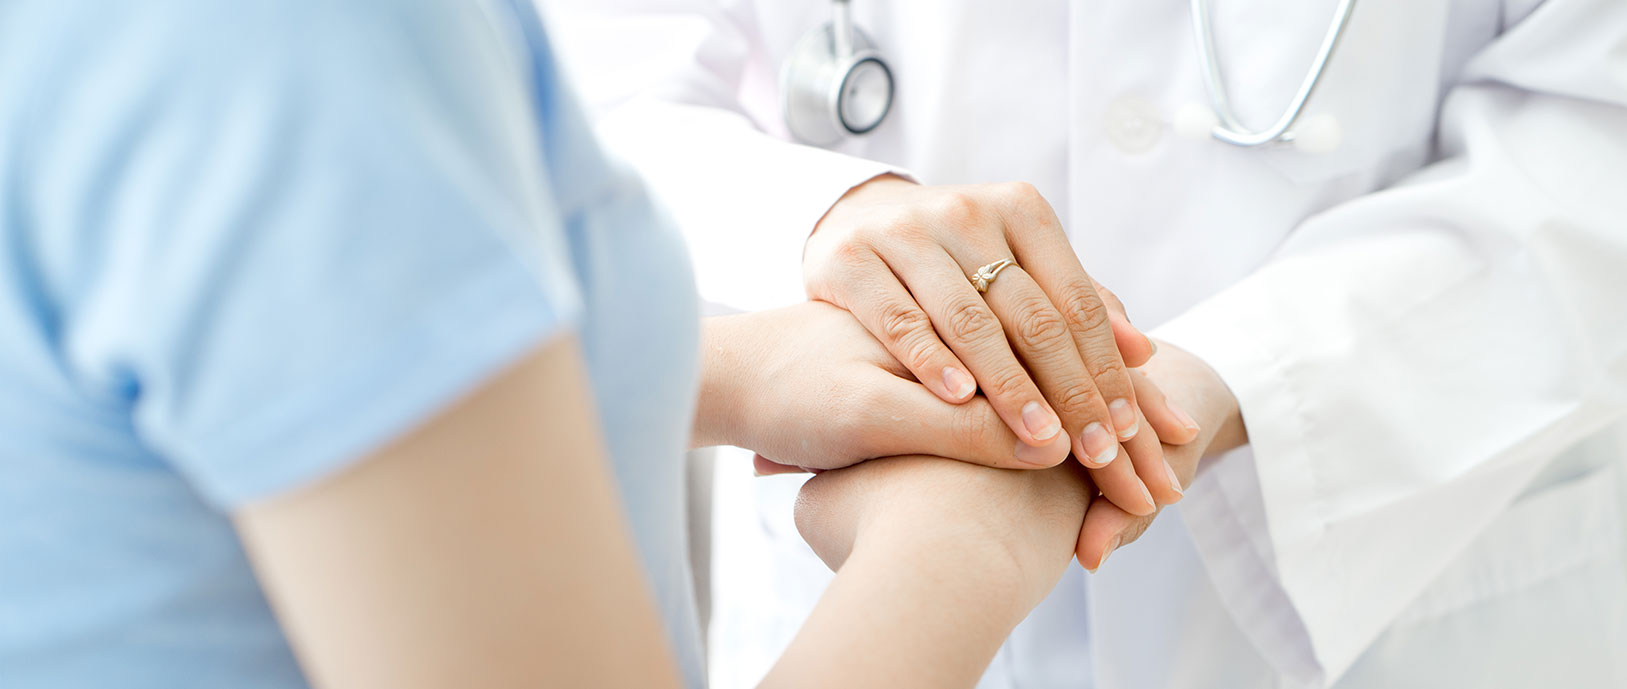 A doctors hand is placed over a patient's hand in comfort